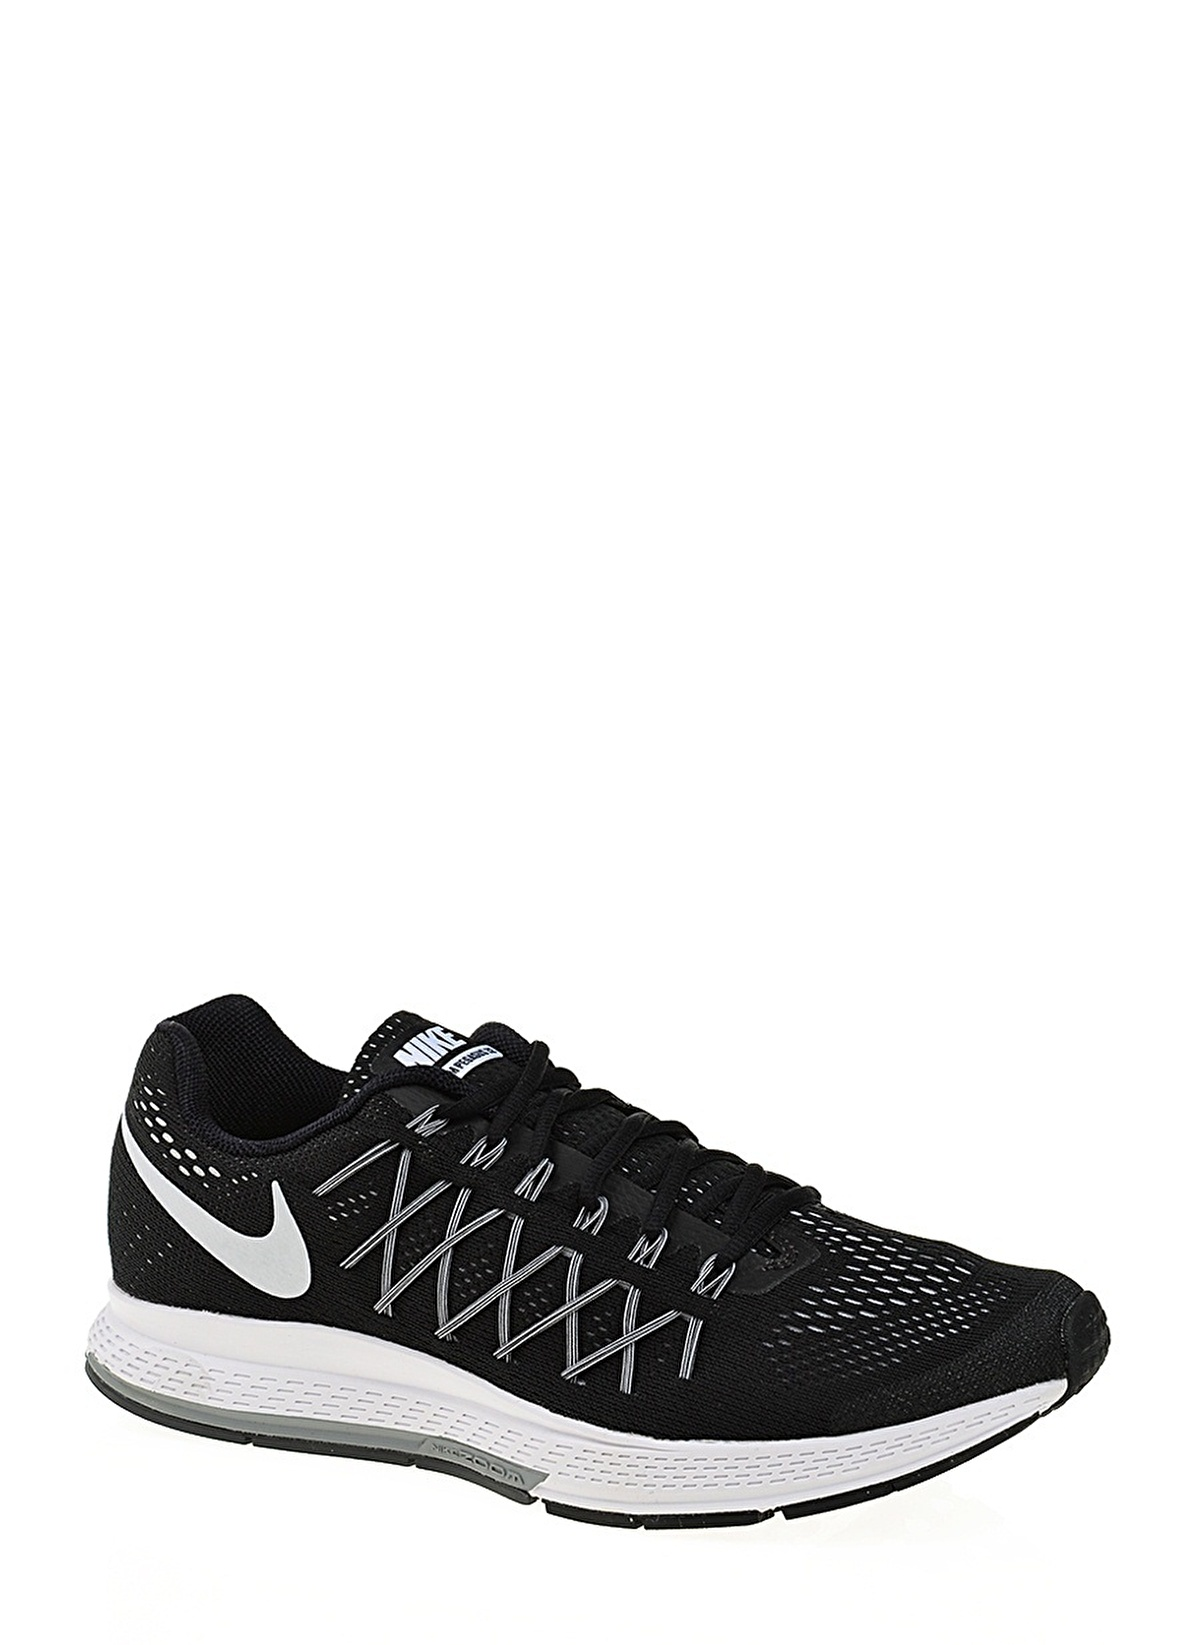 Parcialmente Educación moral aprendiz  Limited Time Deals·New Deals Everyday nike pegasus 32, OFF 73%,Buy!